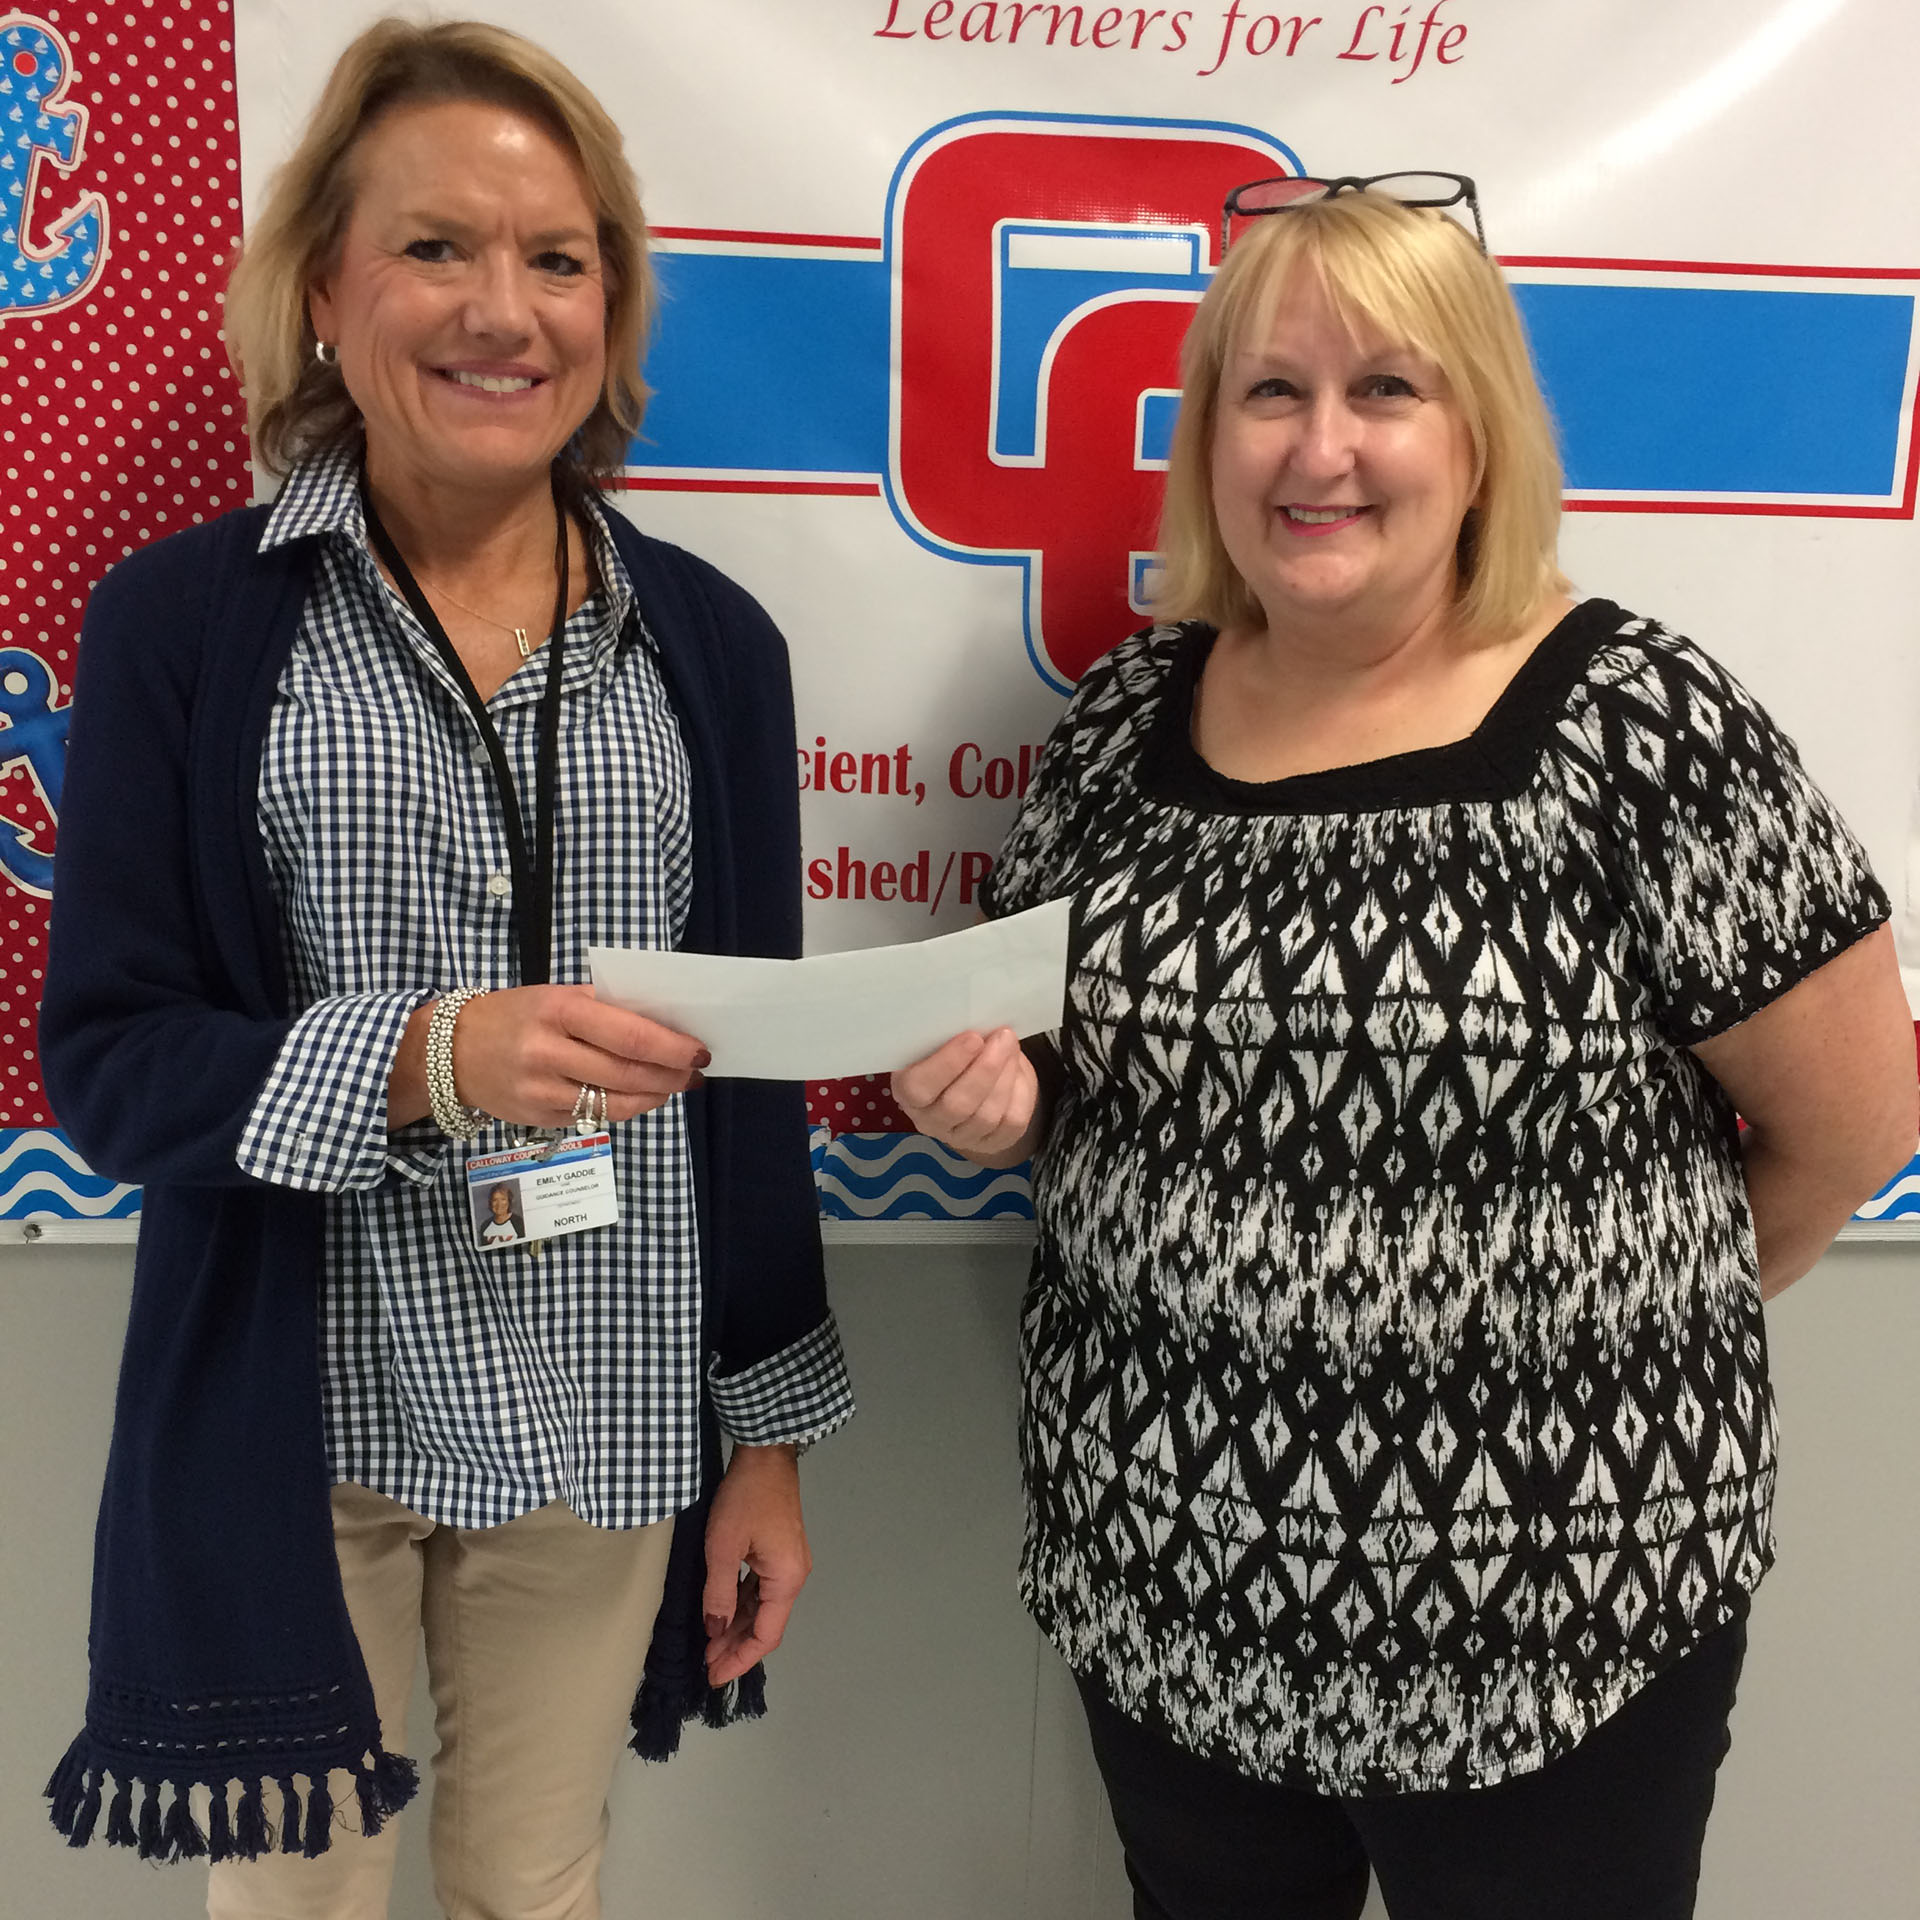 Emily Gaddis, Guidance Counselor at North Calloway Elementary, receives a check from Sandy Anderson President Elect of the CCRTA.